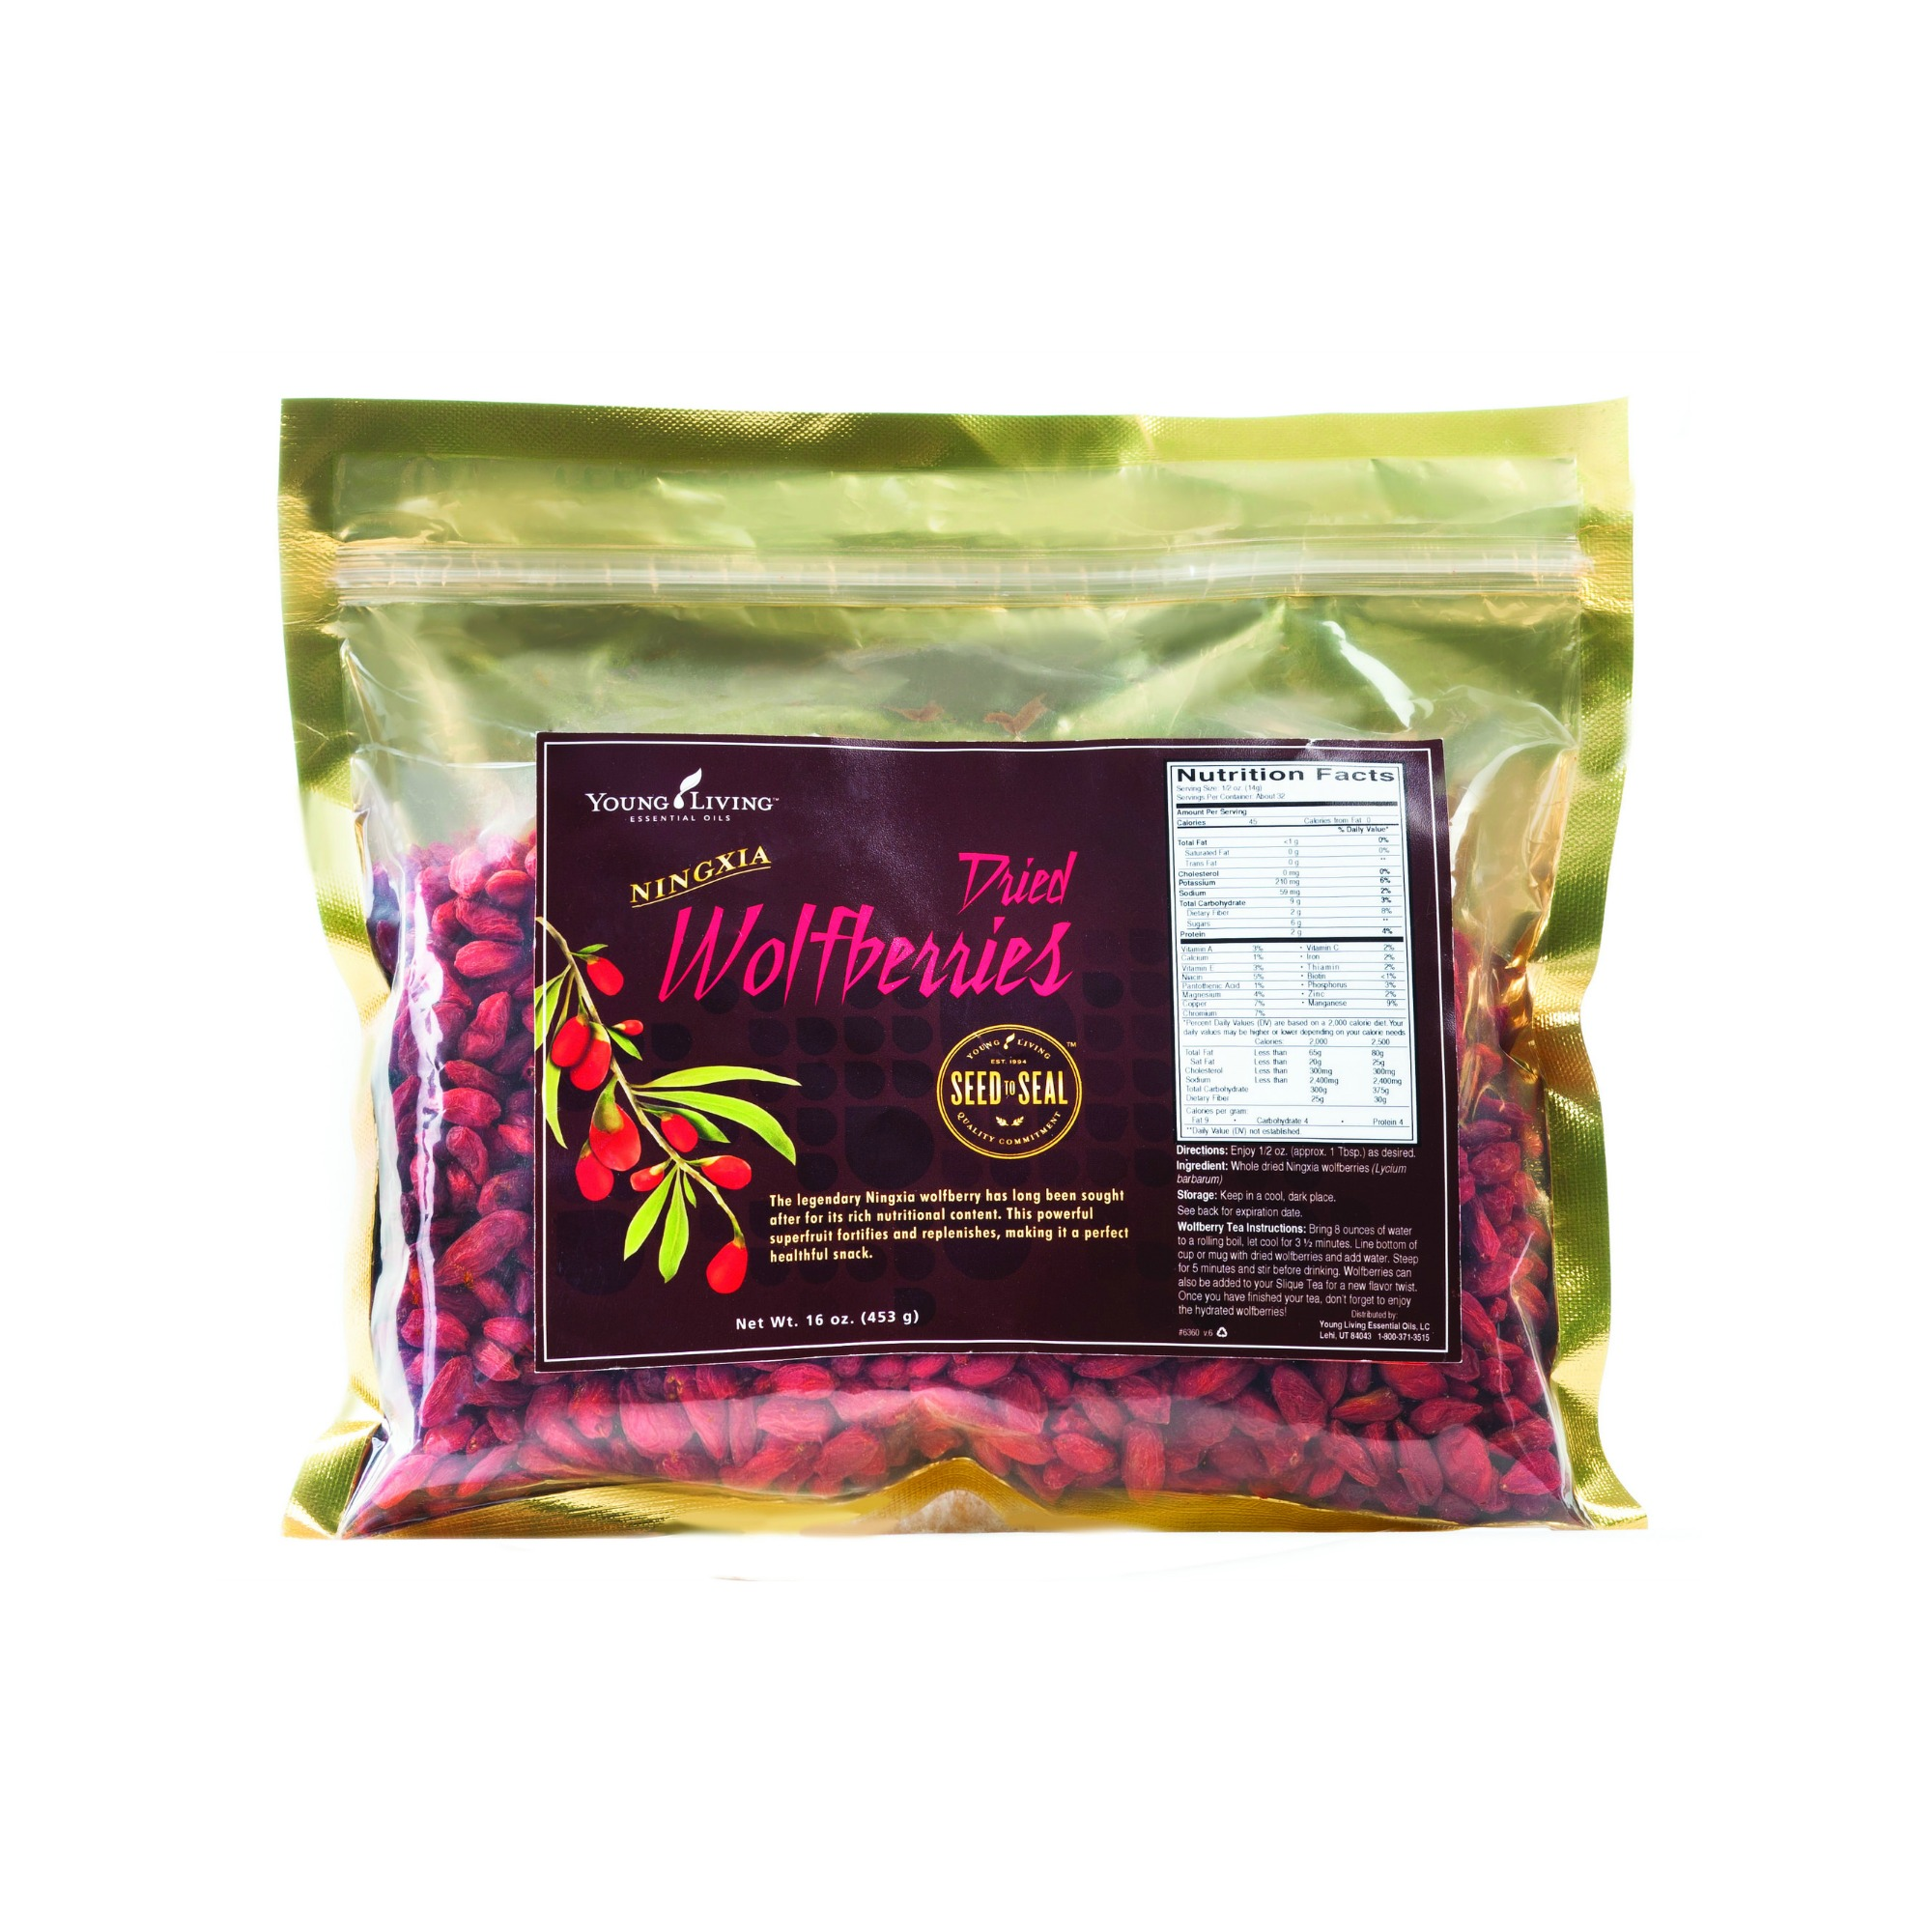 ORGANIC DRIED WOLFBERRIES    Young Living's Organic Dried Wolfberries are a sweet, organic snack from nature that's easy to make a part of your daily diet. Our gentle drying process makes these USDA-certified organic wolfberries versatile and easy to incorporate into lots of recipes, letting you add wolfberry benefits to anything from stir-fry to baked goods! With polyphenols and polysaccharides, this exotic berry is touted around the world for its taste and nutrients. Documented use of wolfberries dates back to the Ming Dynasty, where they were part of ancient Chinese culture.   Click here   to learn more about this product.